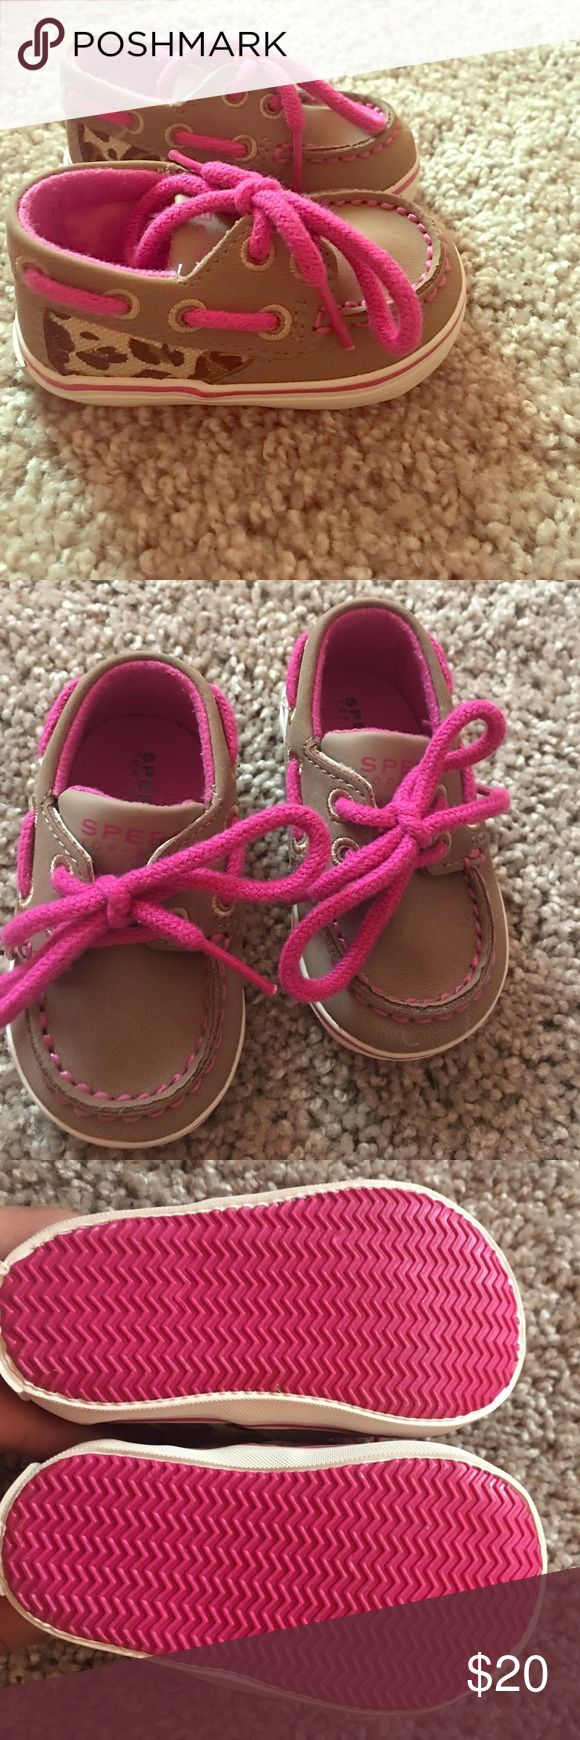 Baby Girl Sperrys BNWOT. never worn. for babies age 6wks-3months. Sperry Top-Sider Shoes